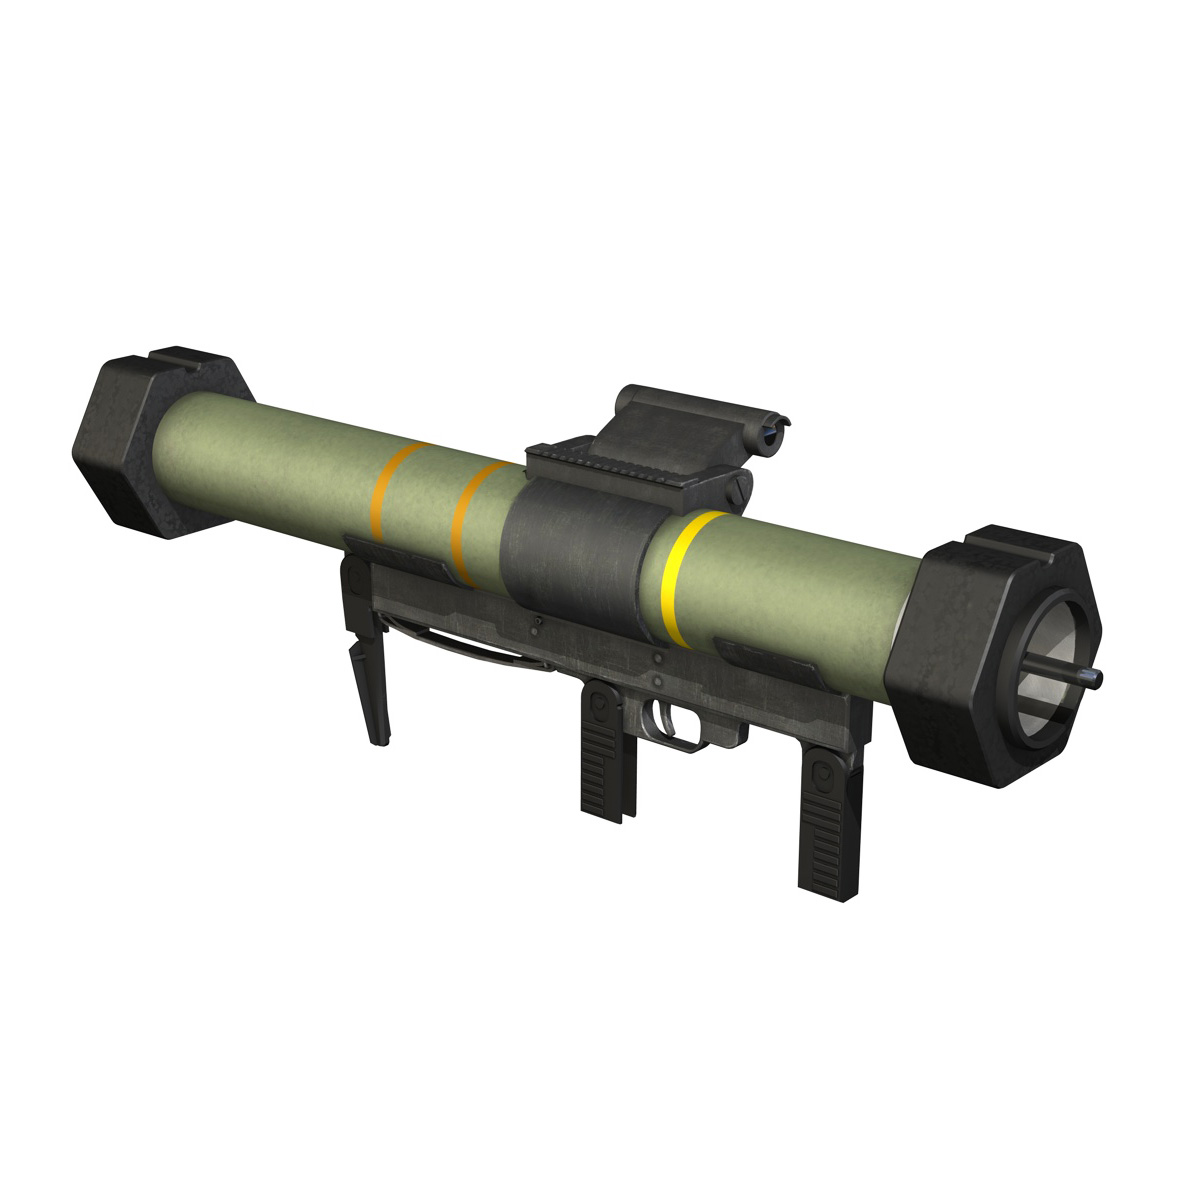 anti-armor launcher matador 3d model 3ds fbx c4d lwo obj 197073